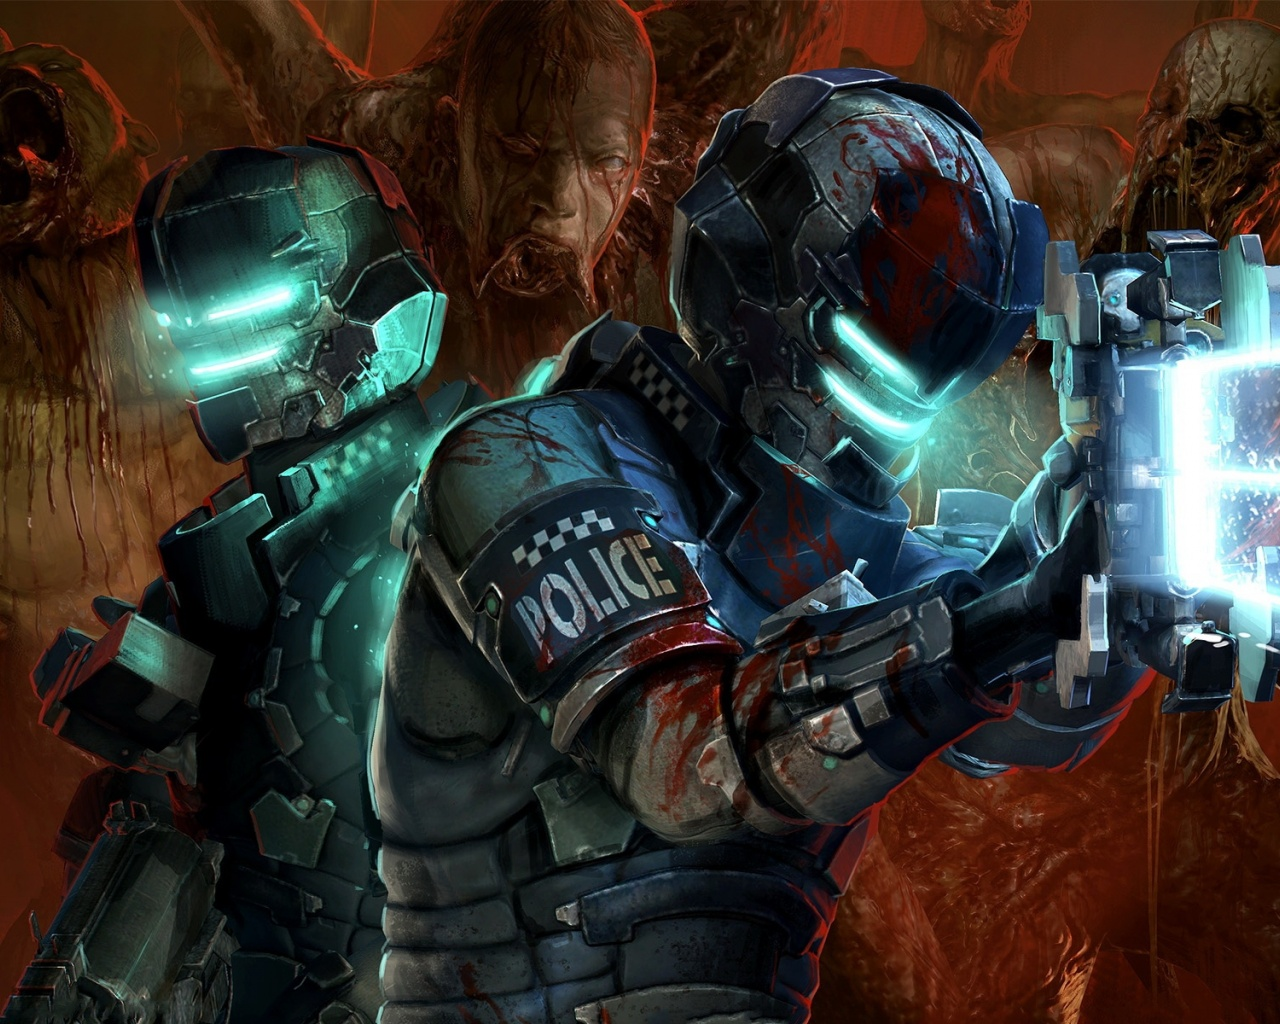 Dead Space 2 1280x1024 Wallpapers 1280x1024 Wallpapers Pictures 1280x1024